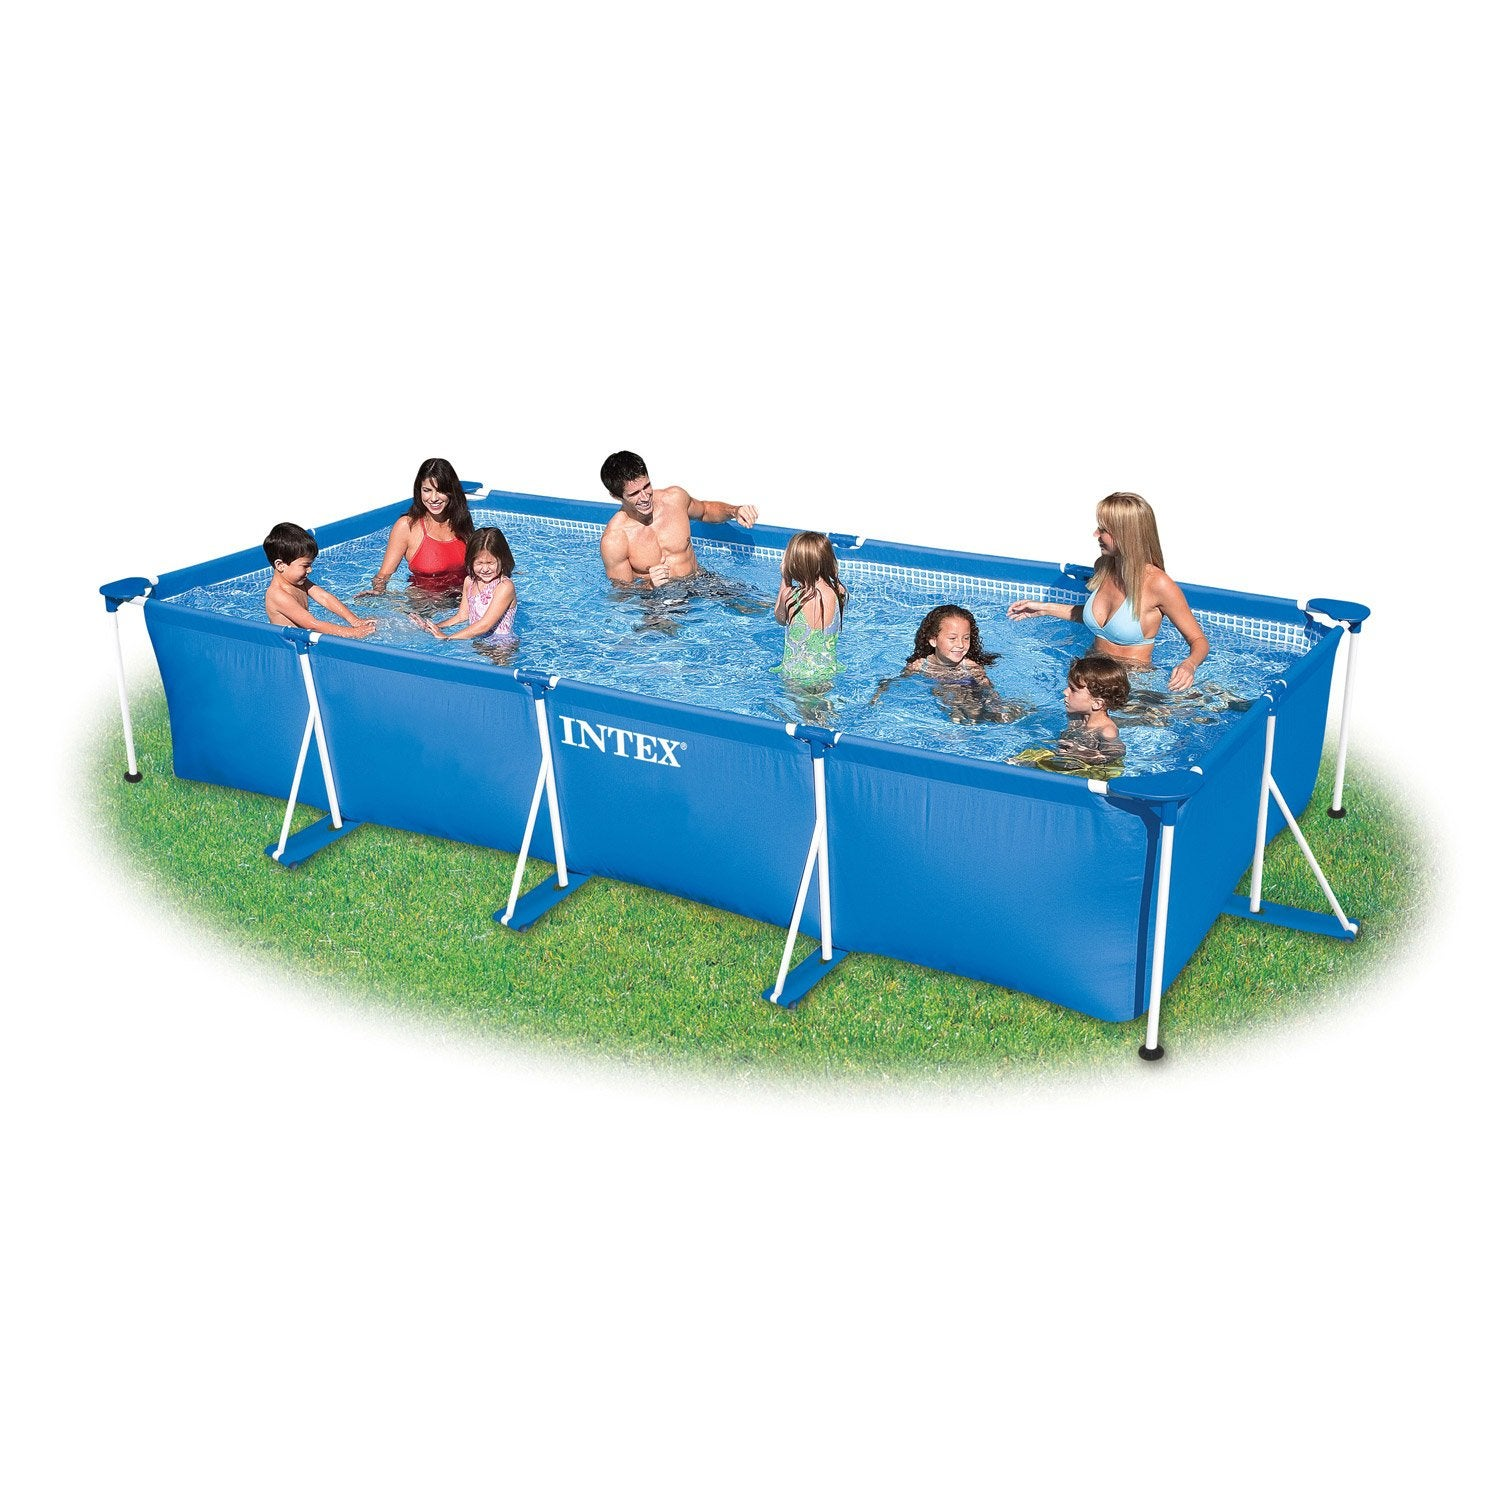 Piscine hors sol autoportante tubulaire intex l x l for Piscine 3 boudins intex